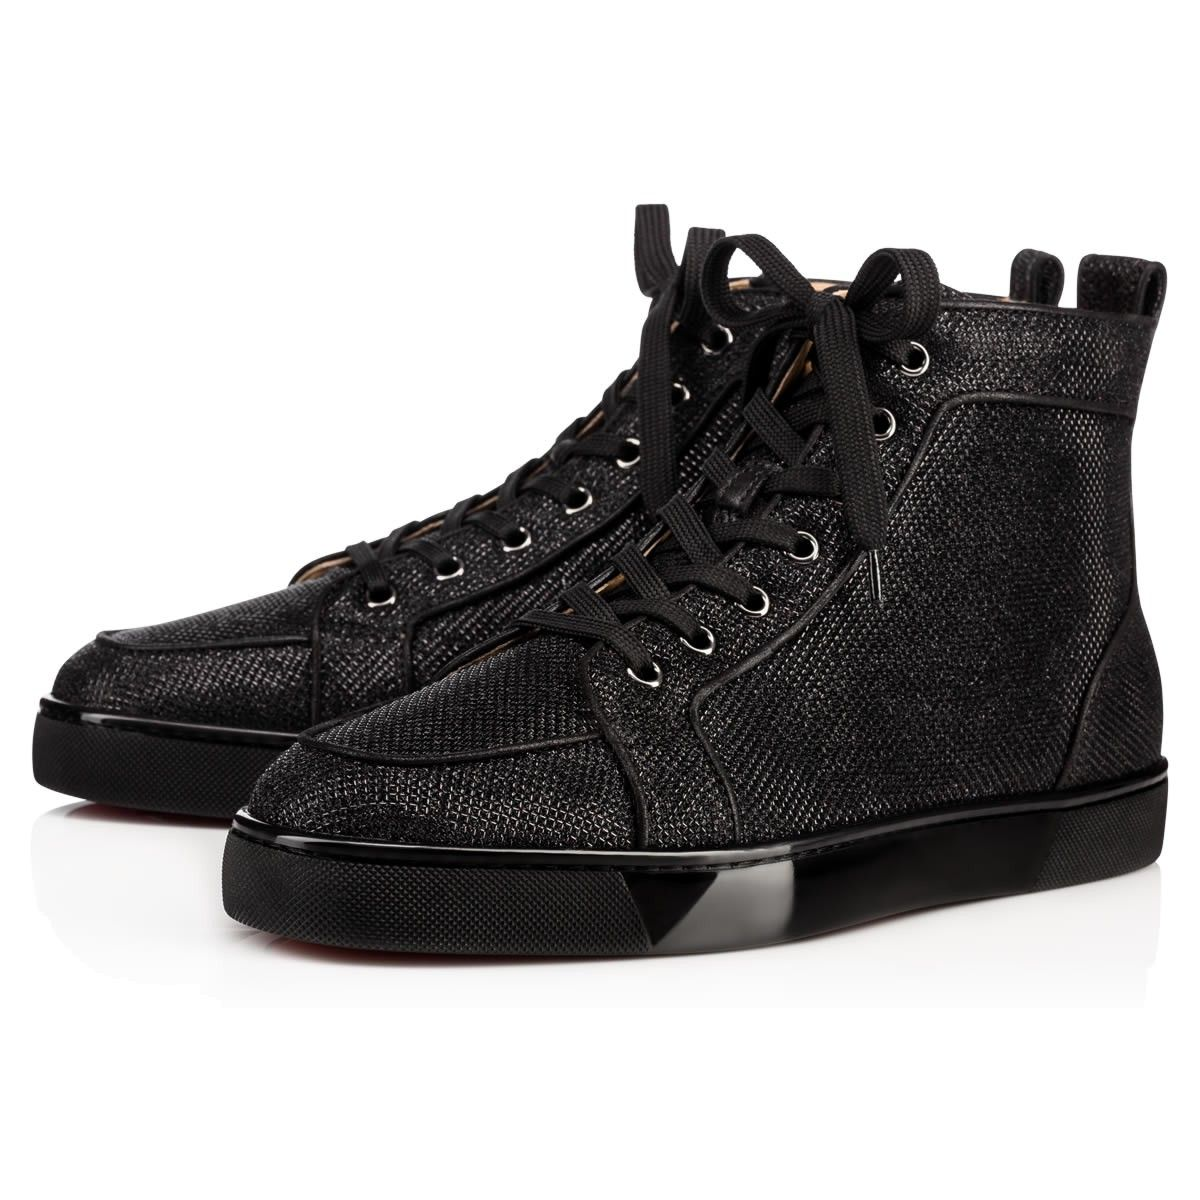 066a4fbc3576 CHRISTIAN LOUBOUTIN Rantus Orlato Men S Flat Black Glitter - Men Shoes -  Christian Louboutin.  christianlouboutin  shoes